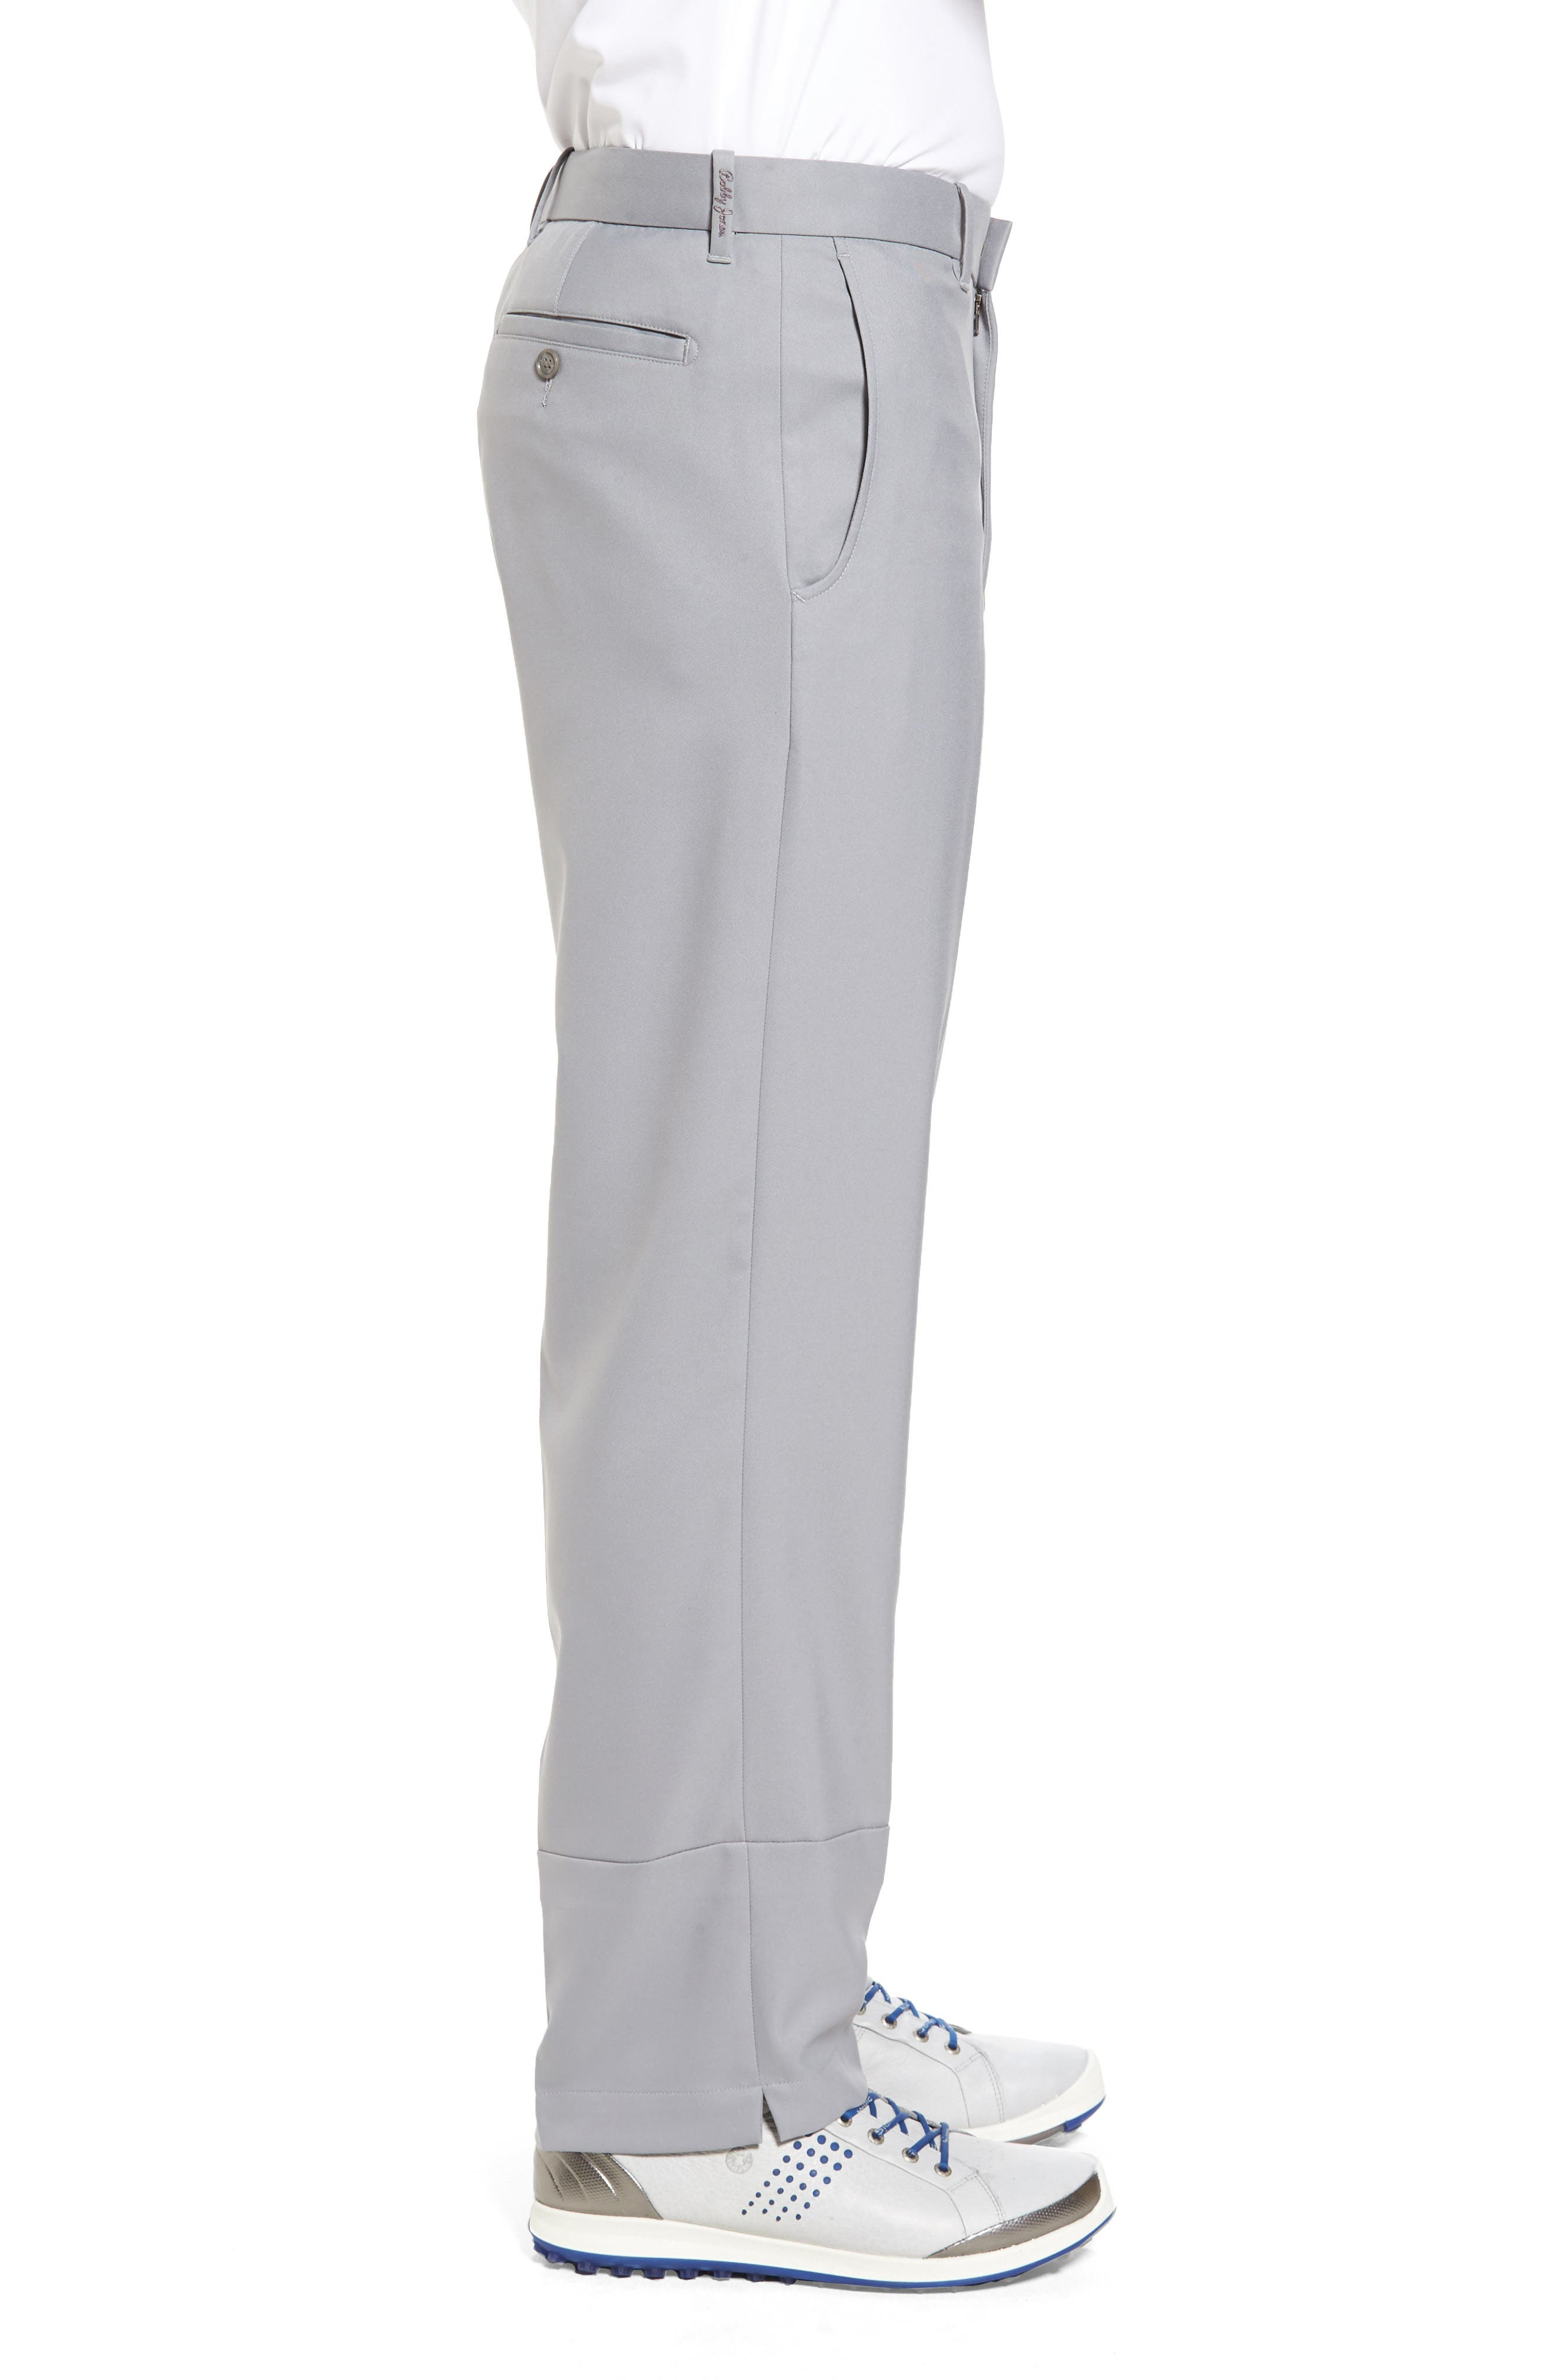 'Tech' Flat Front Wrinkle Free Golf Pants,                             Alternate thumbnail 3, color,                             052